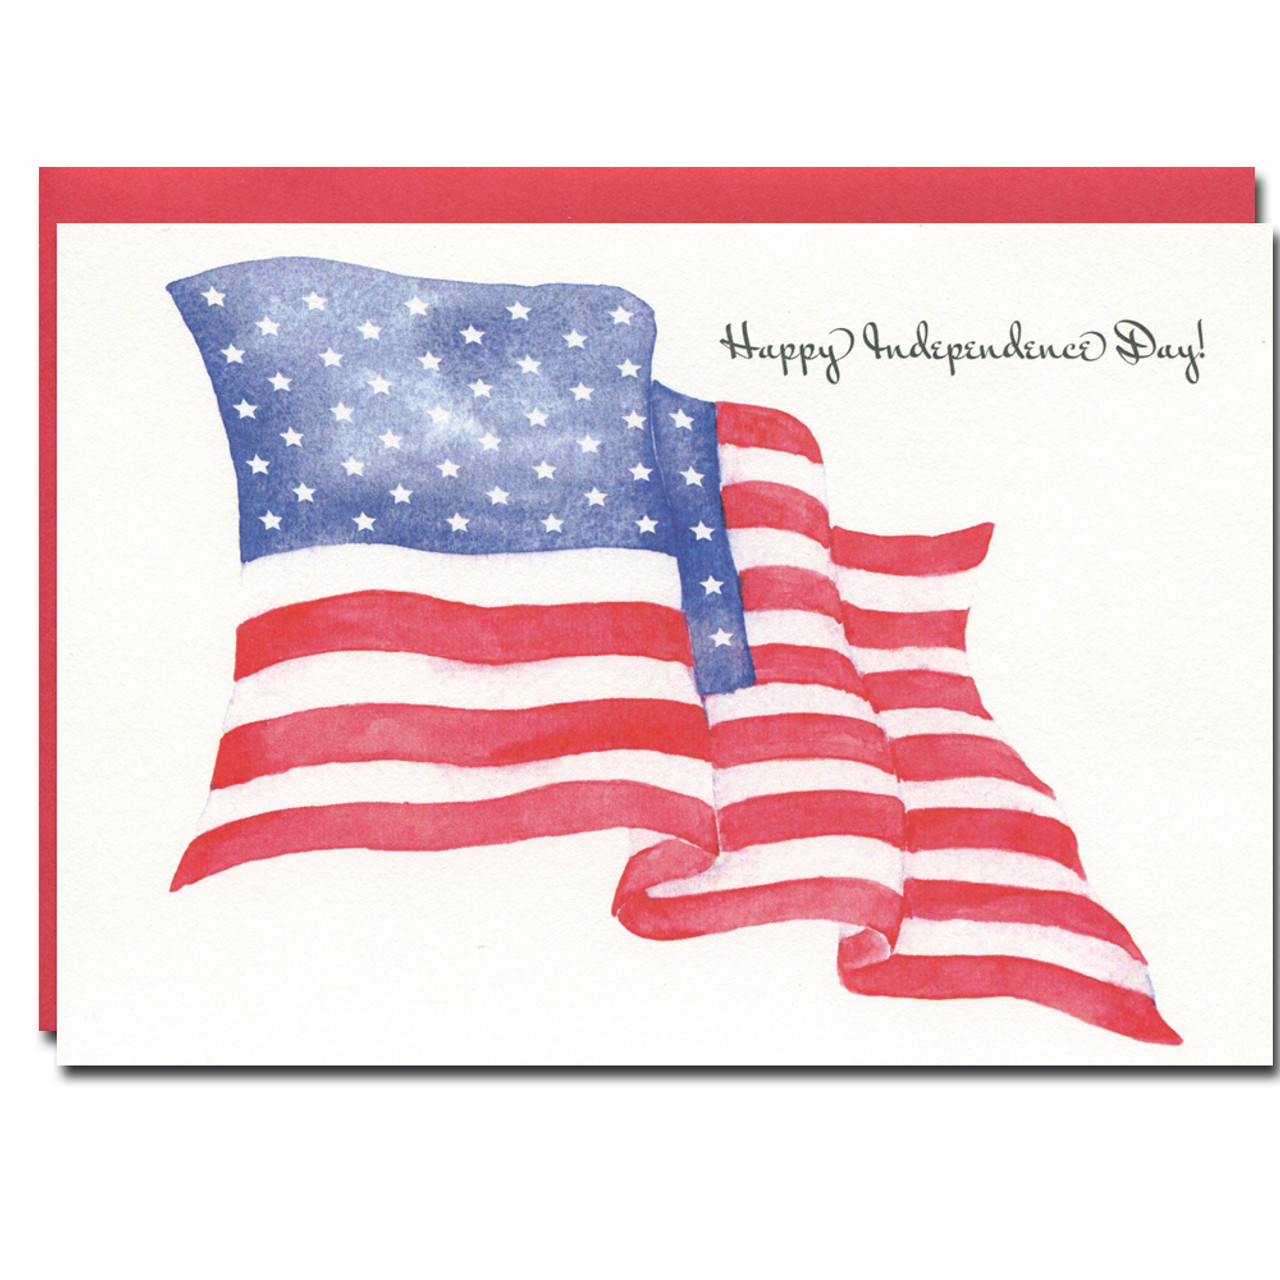 July 4th - American Flag has a watercolor illustration the flag and the greeting, Happy Independence Day!